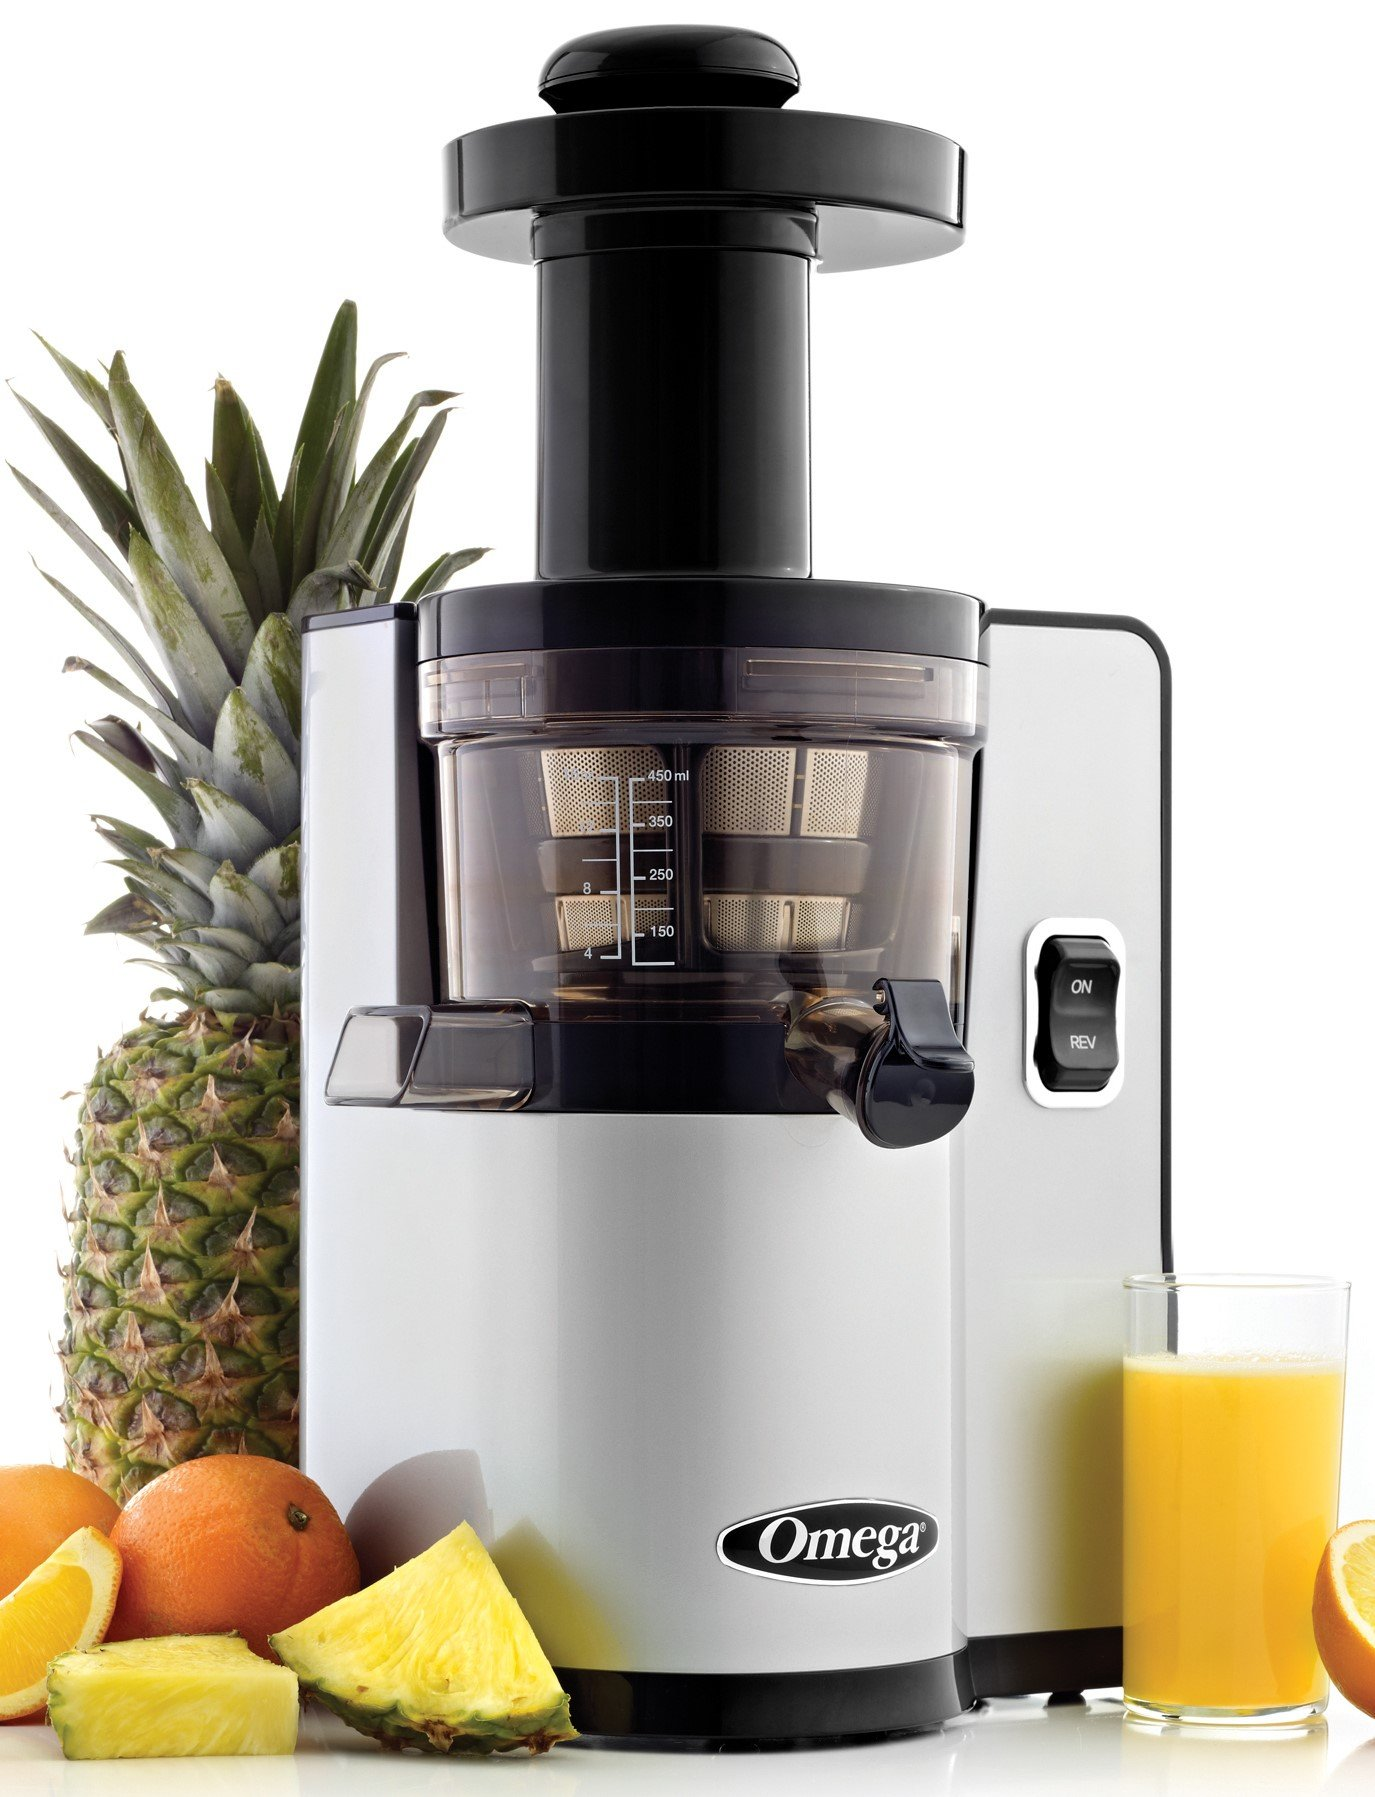 Omega VSJ843QS Vertical Slow Masticating Juicer Makes Continuous Fresh Fruit and Vegetable Juice at 43 Revolutions per Minute Features Compact Design Automatic Pulp Ejection, 150-Watt, Silver by Omega